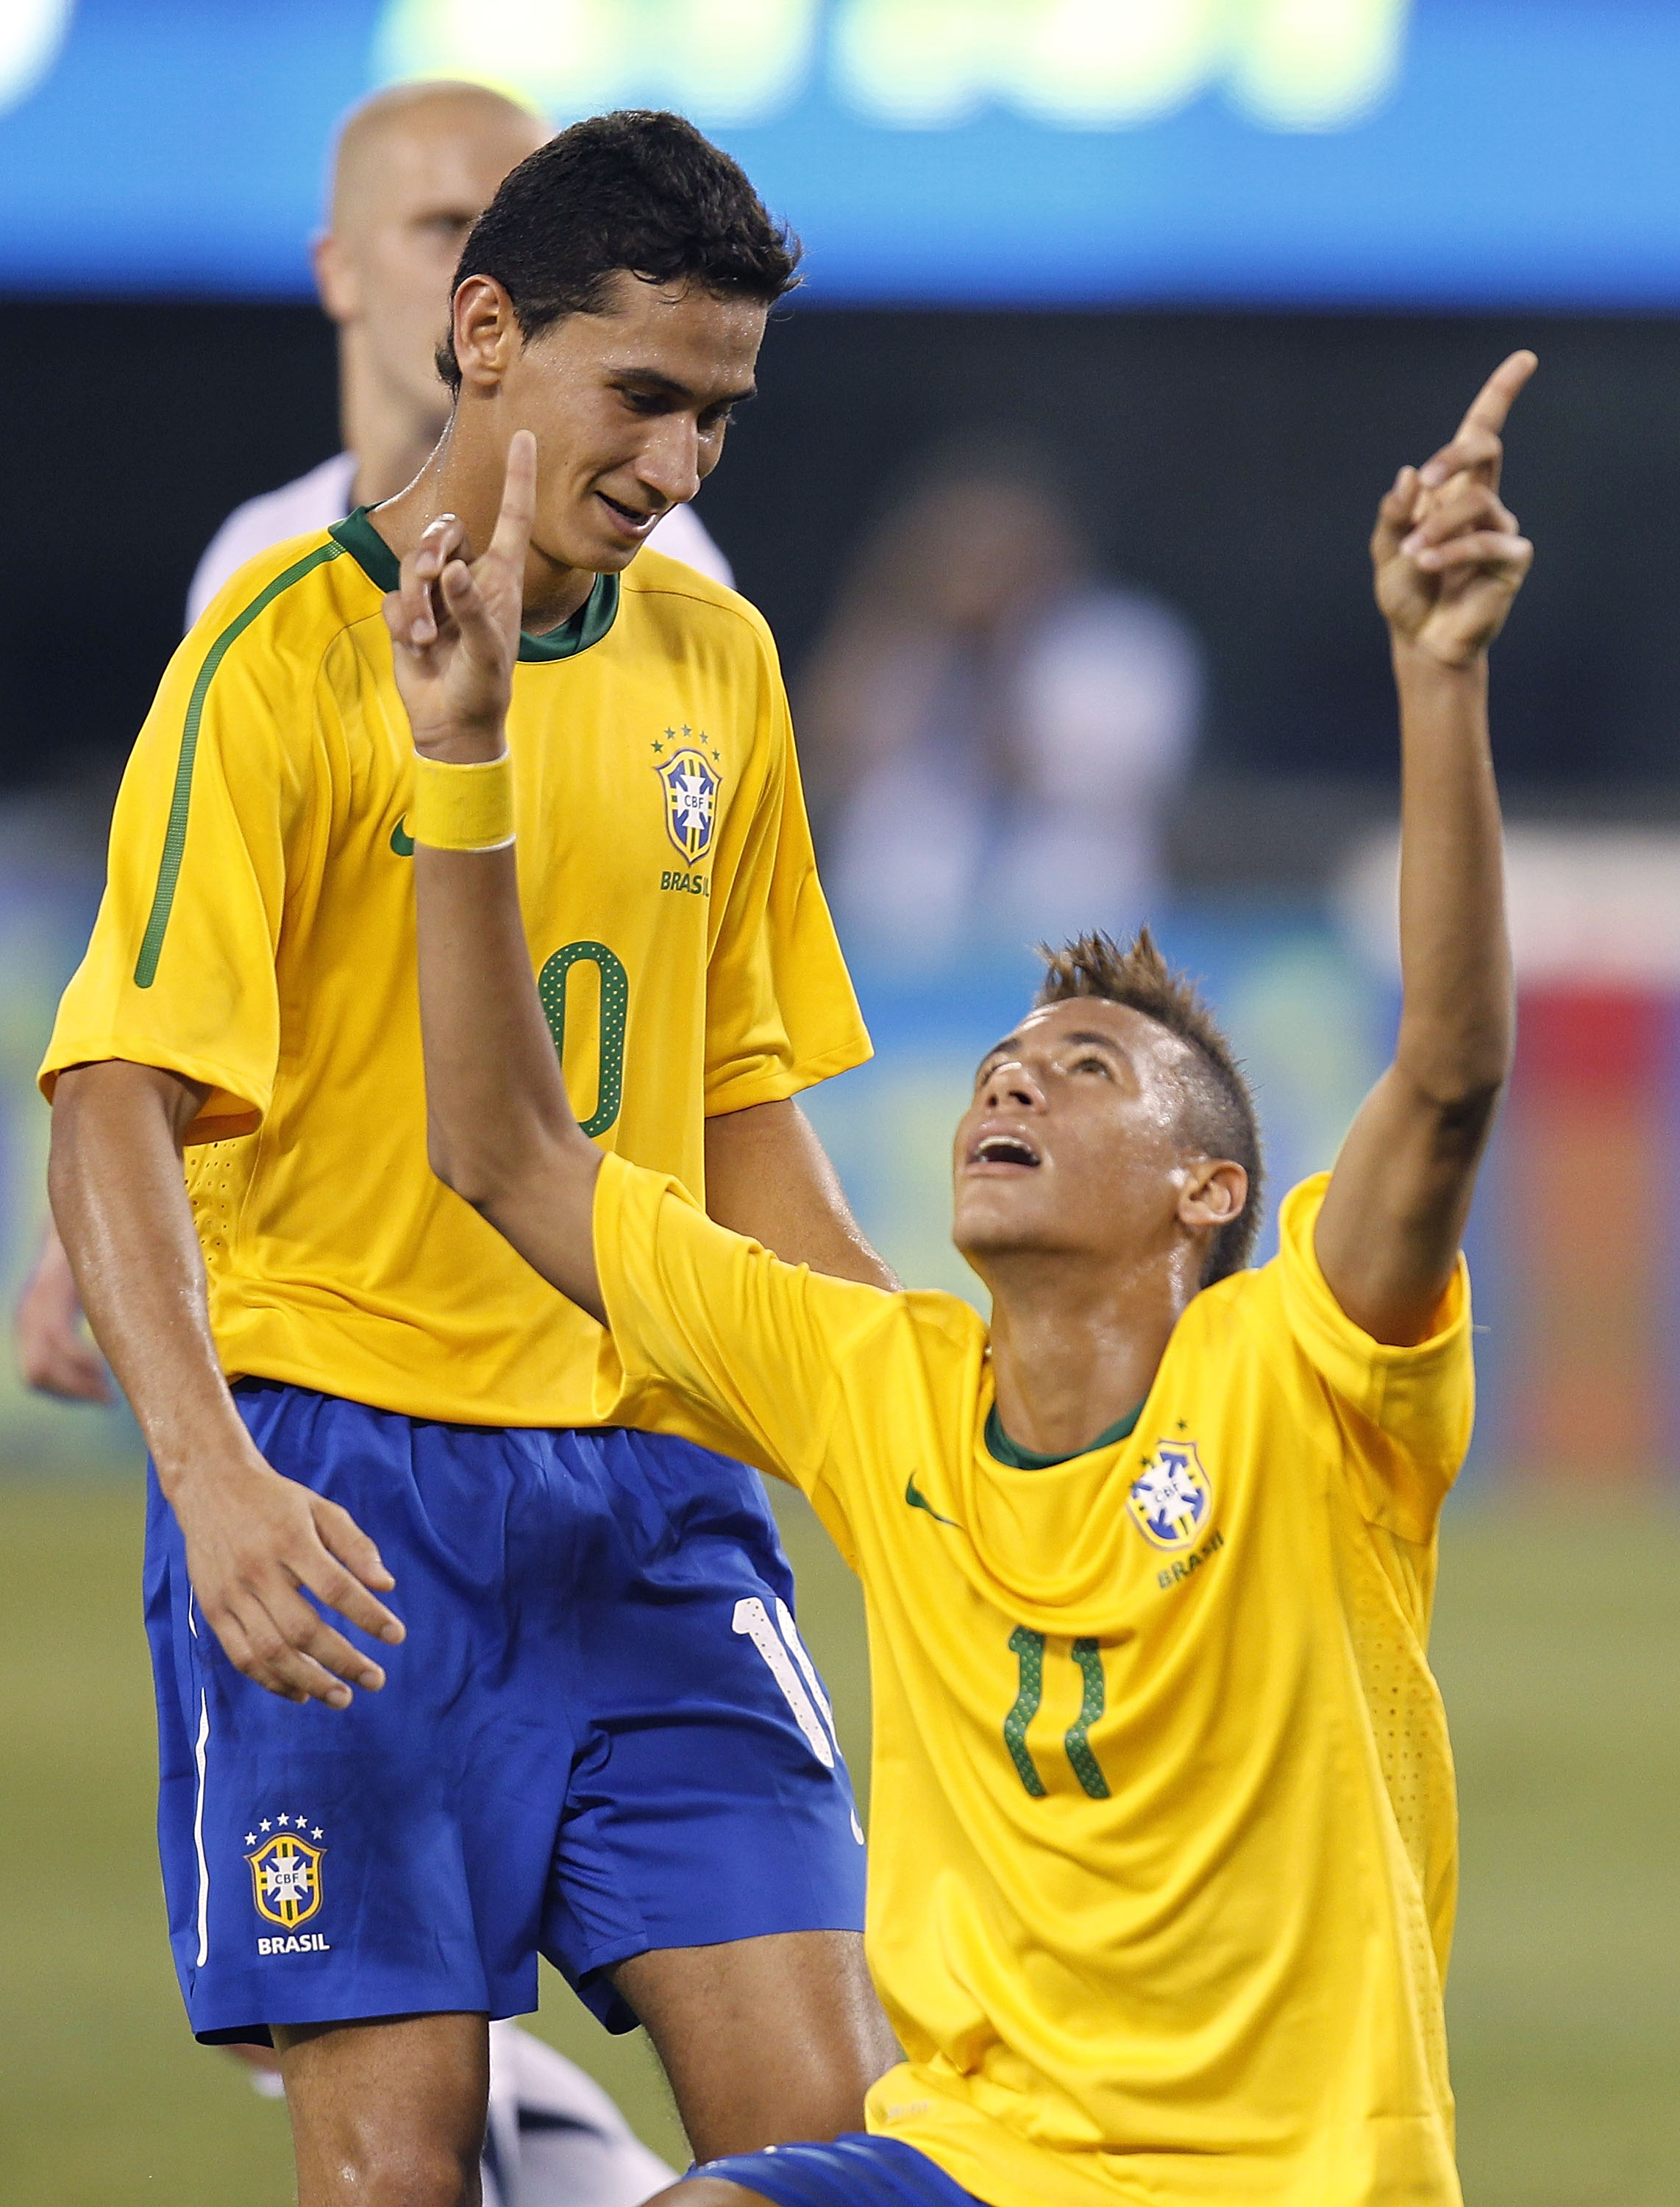 EAST RUTHERFORD, NJ - AUGUST 10: Neymar #11 and Paulo Henrique Ganso #10 of Brazil celebrate Neymar's goal against the U.S. in the first half of a friendly match at the New Meadowlands on August 10, 2010 in East Rutherford, New Jersey. (Photo by Jeff Zele